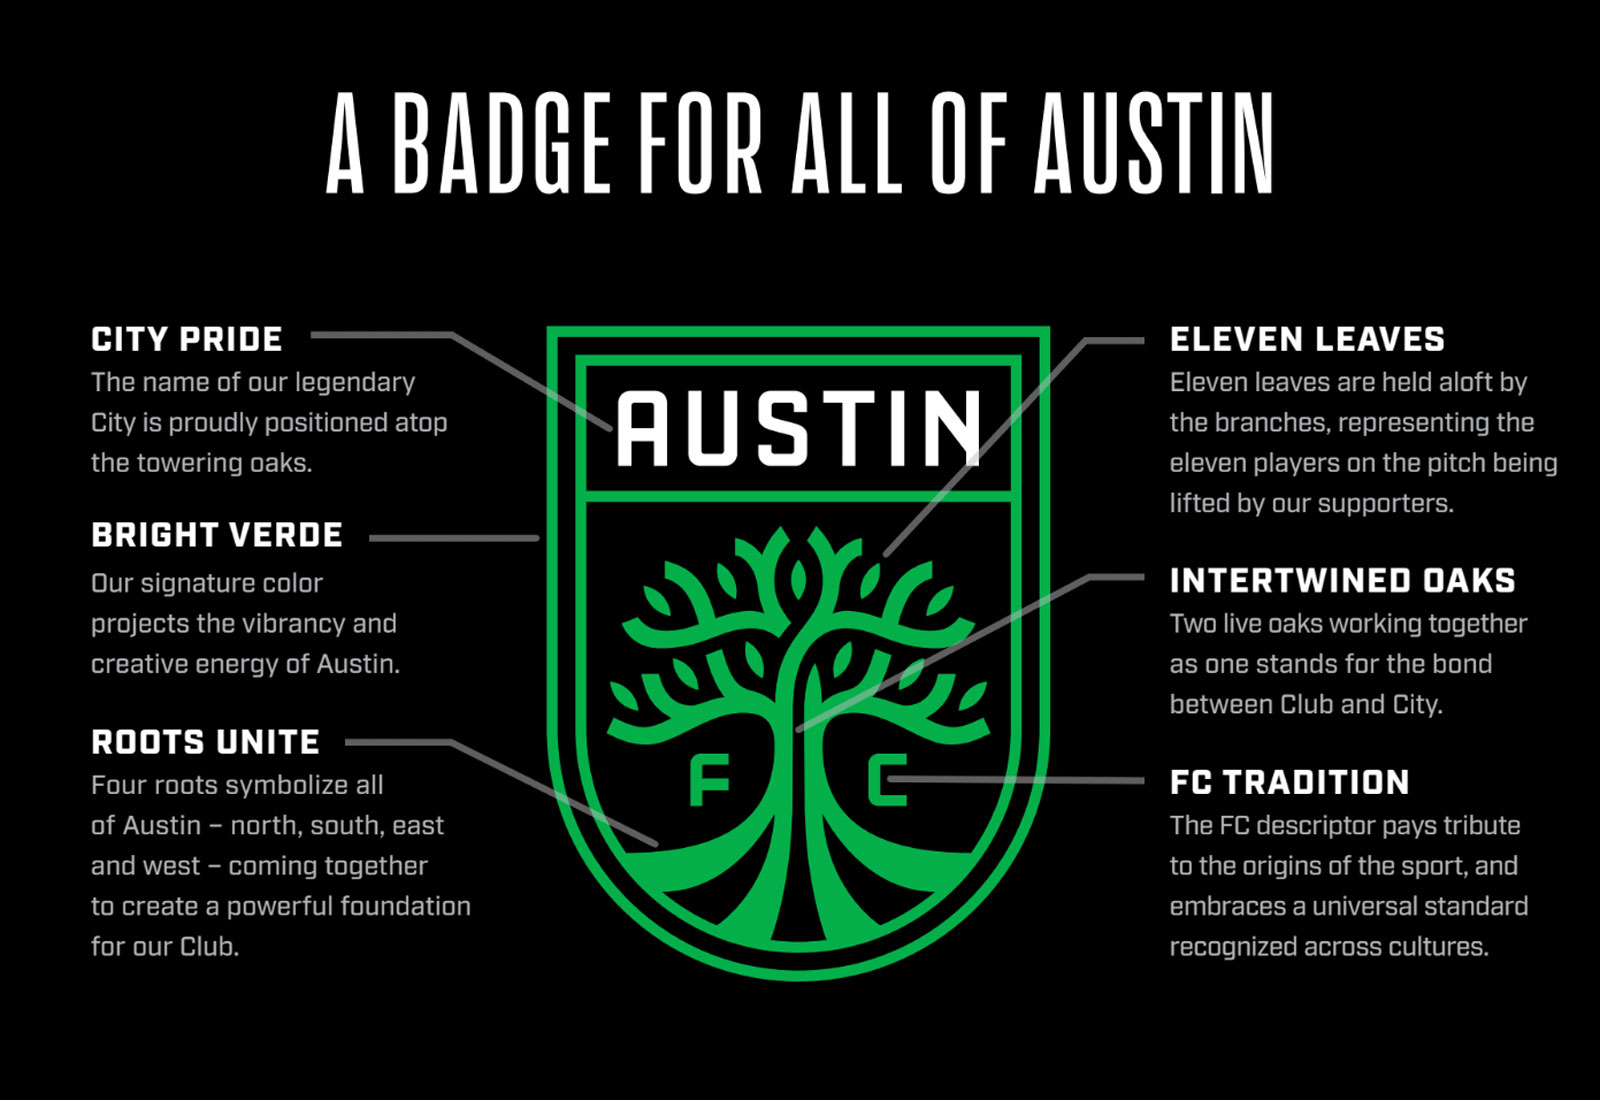 Austin FC would be the name of the relocated Columbus Crew.